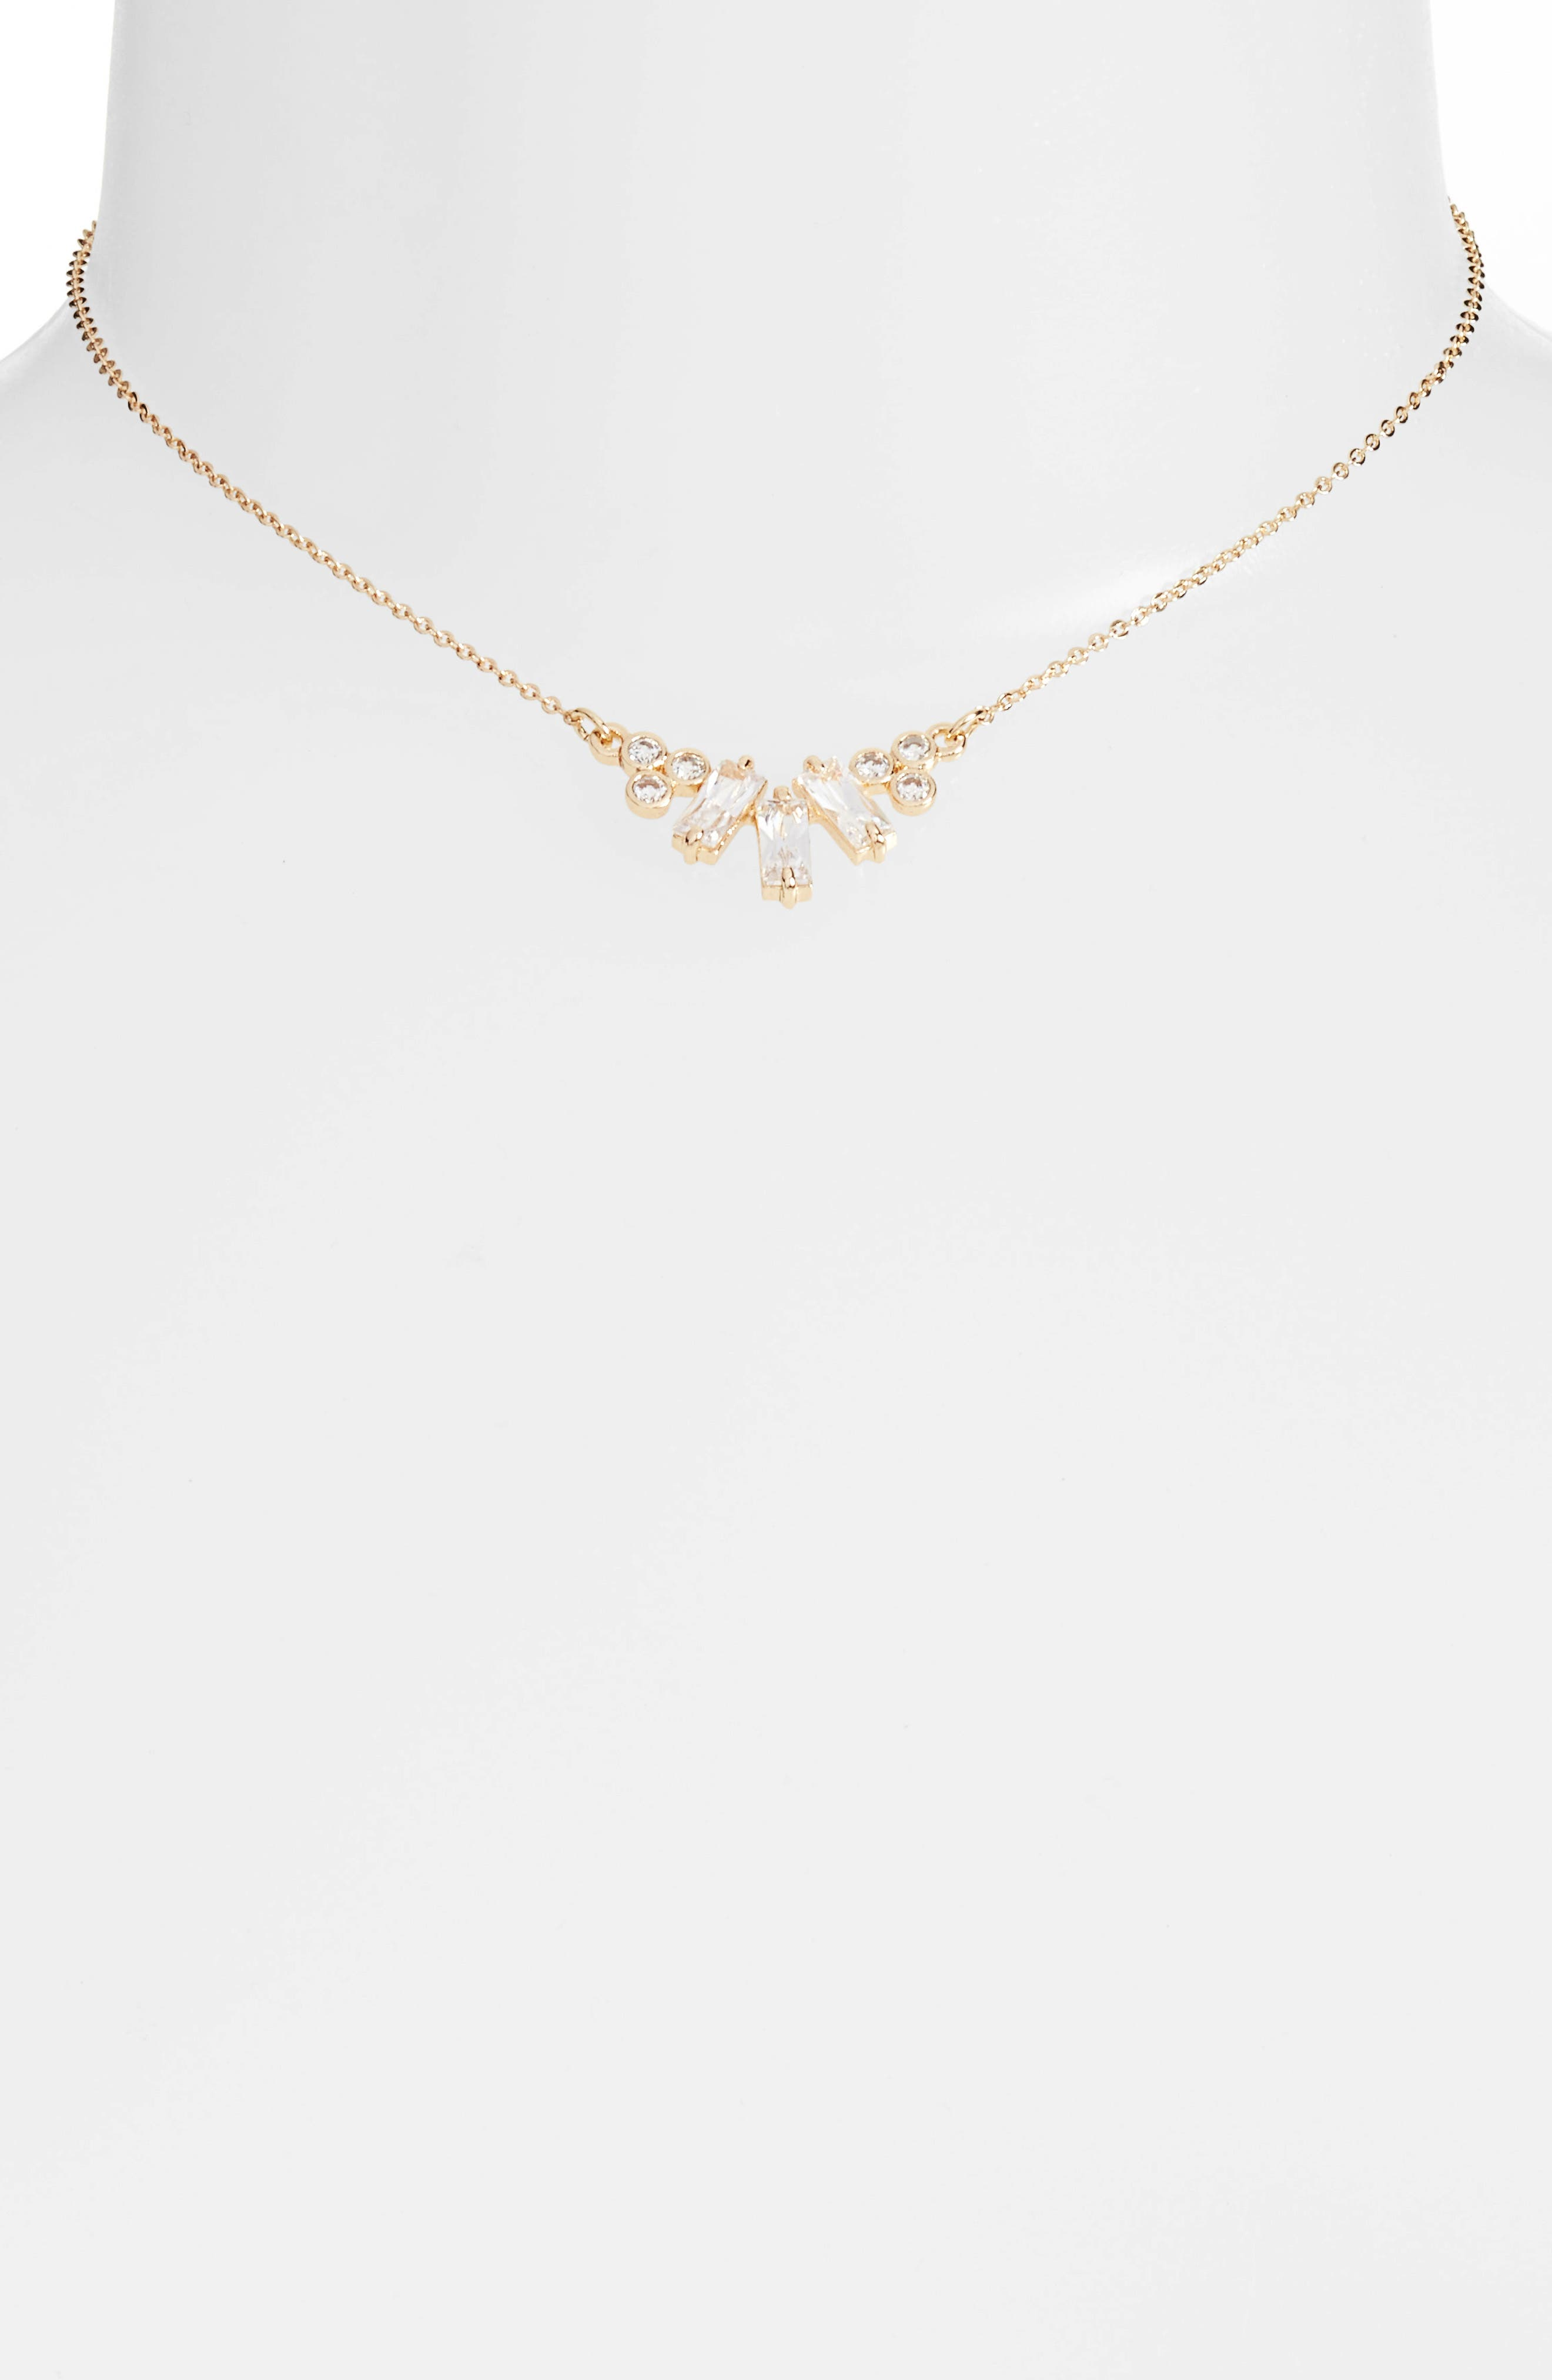 CZ BY KENNETH JAY LANE Cluster Choker